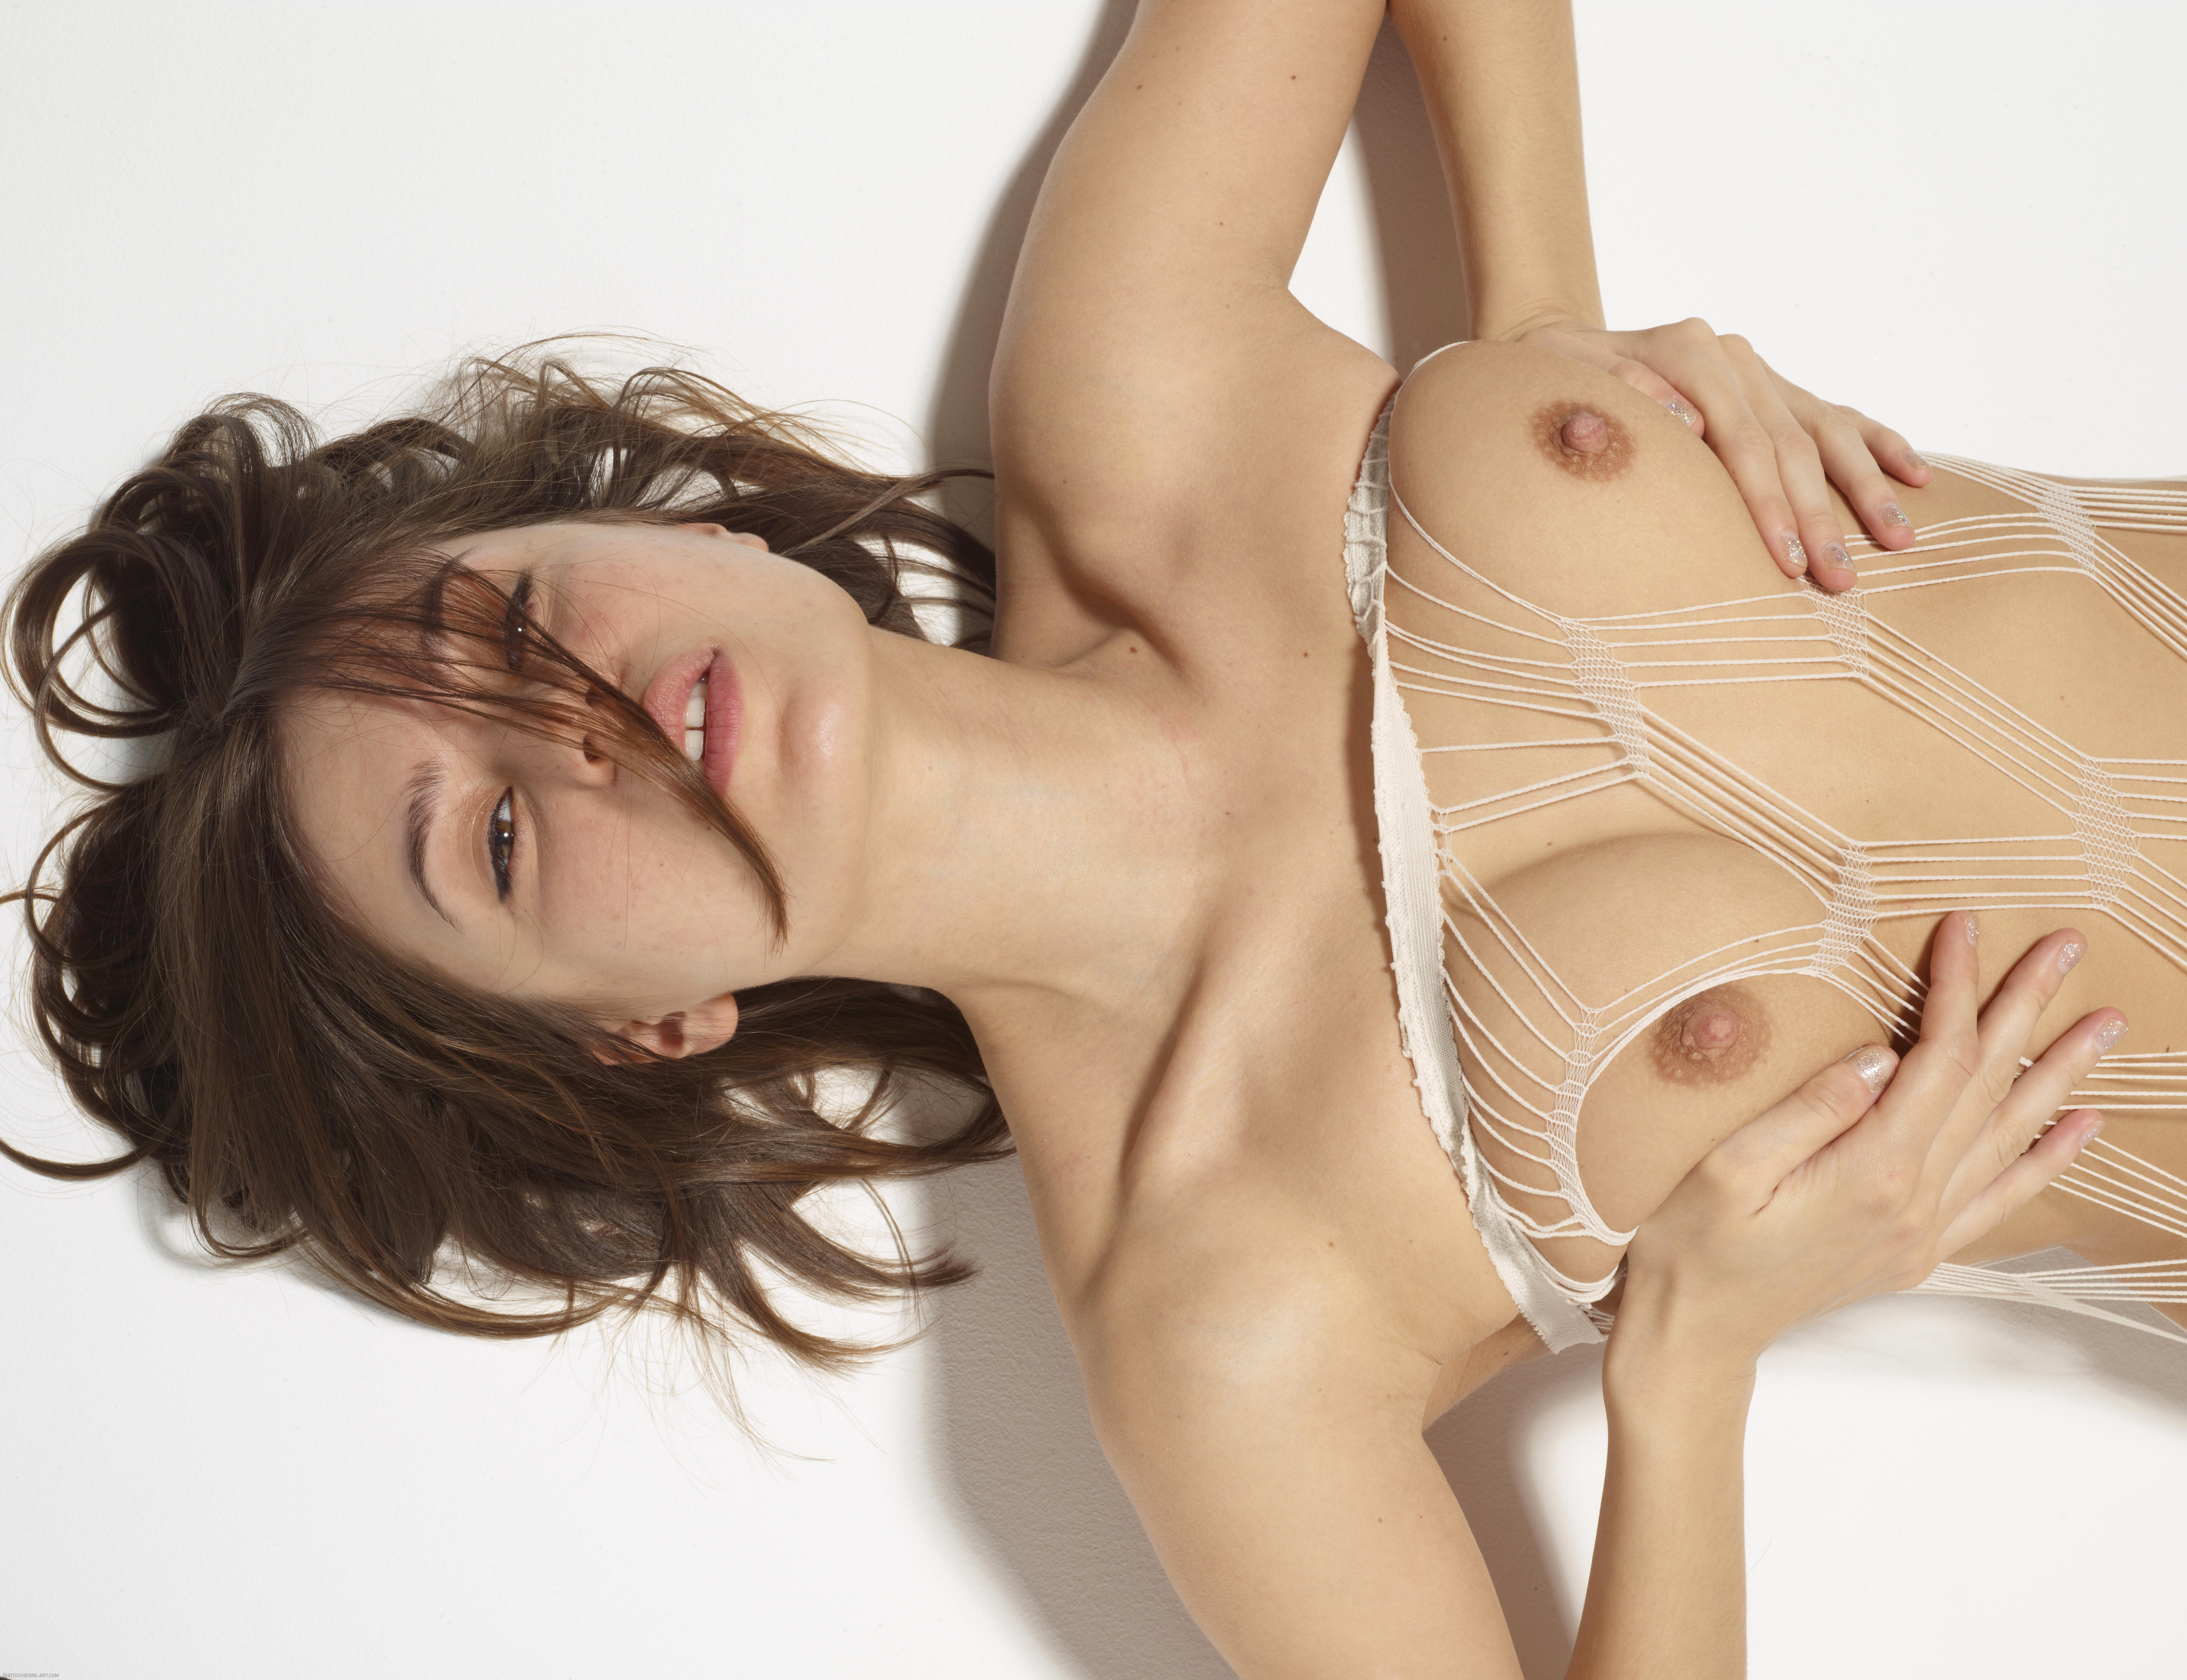 girl squeezing nude nipples up close